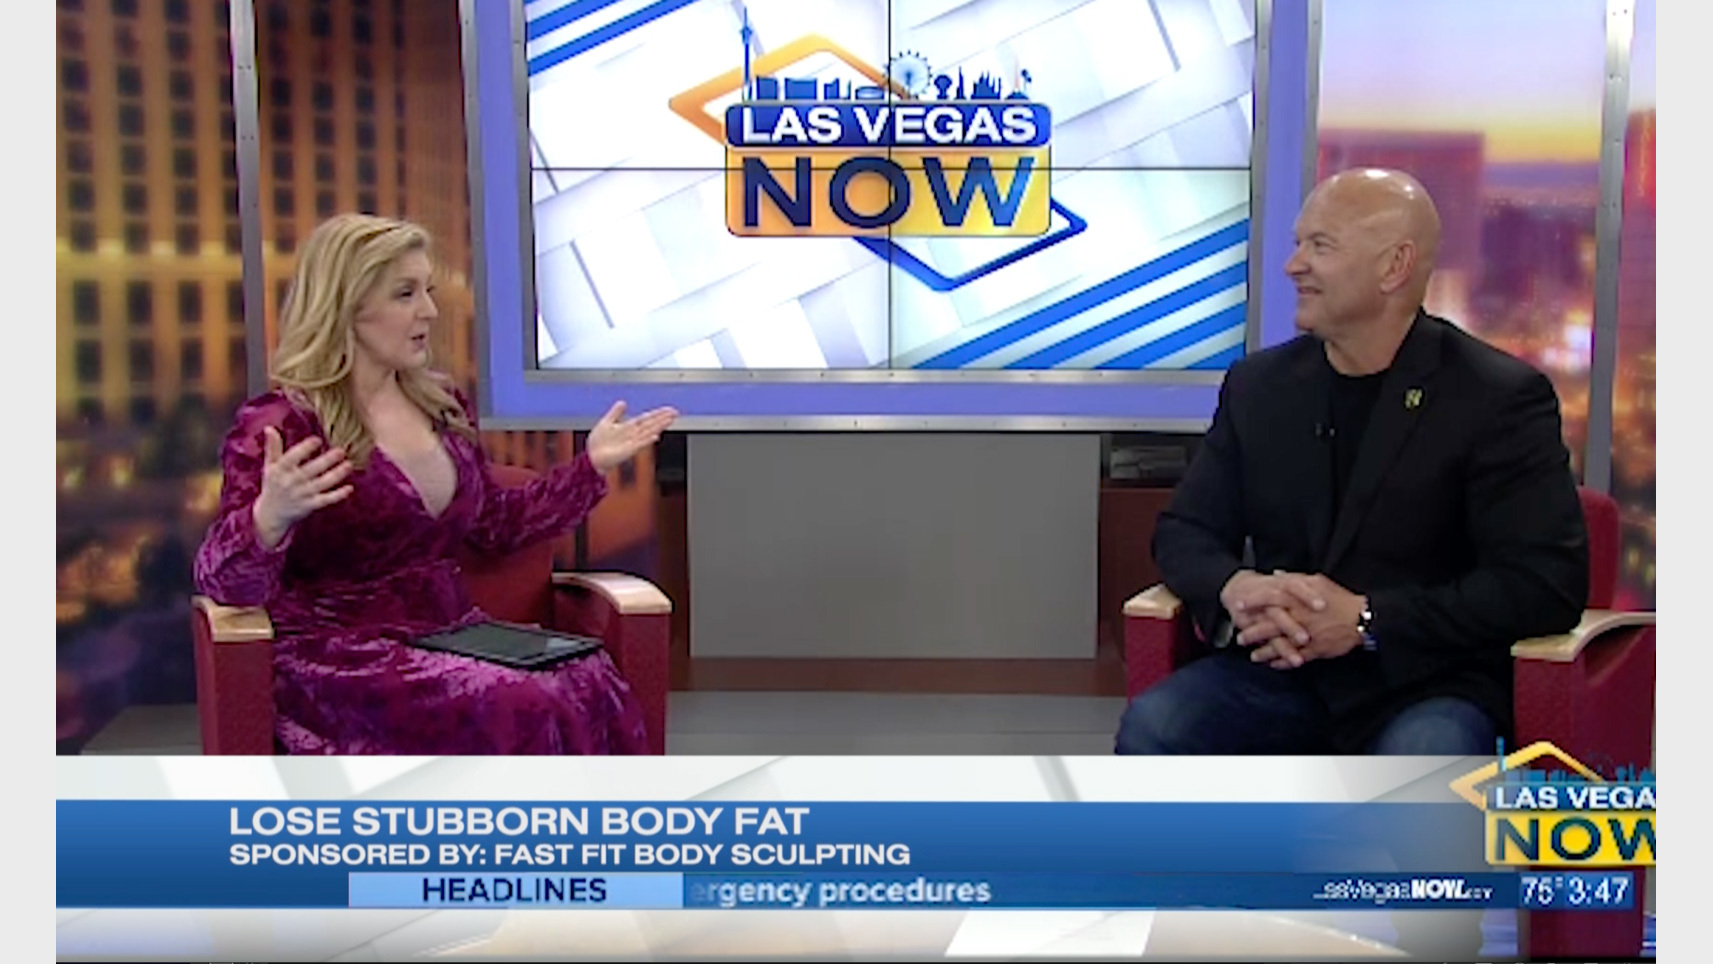 Fast Fit is using new tech to help Vegas lose weight